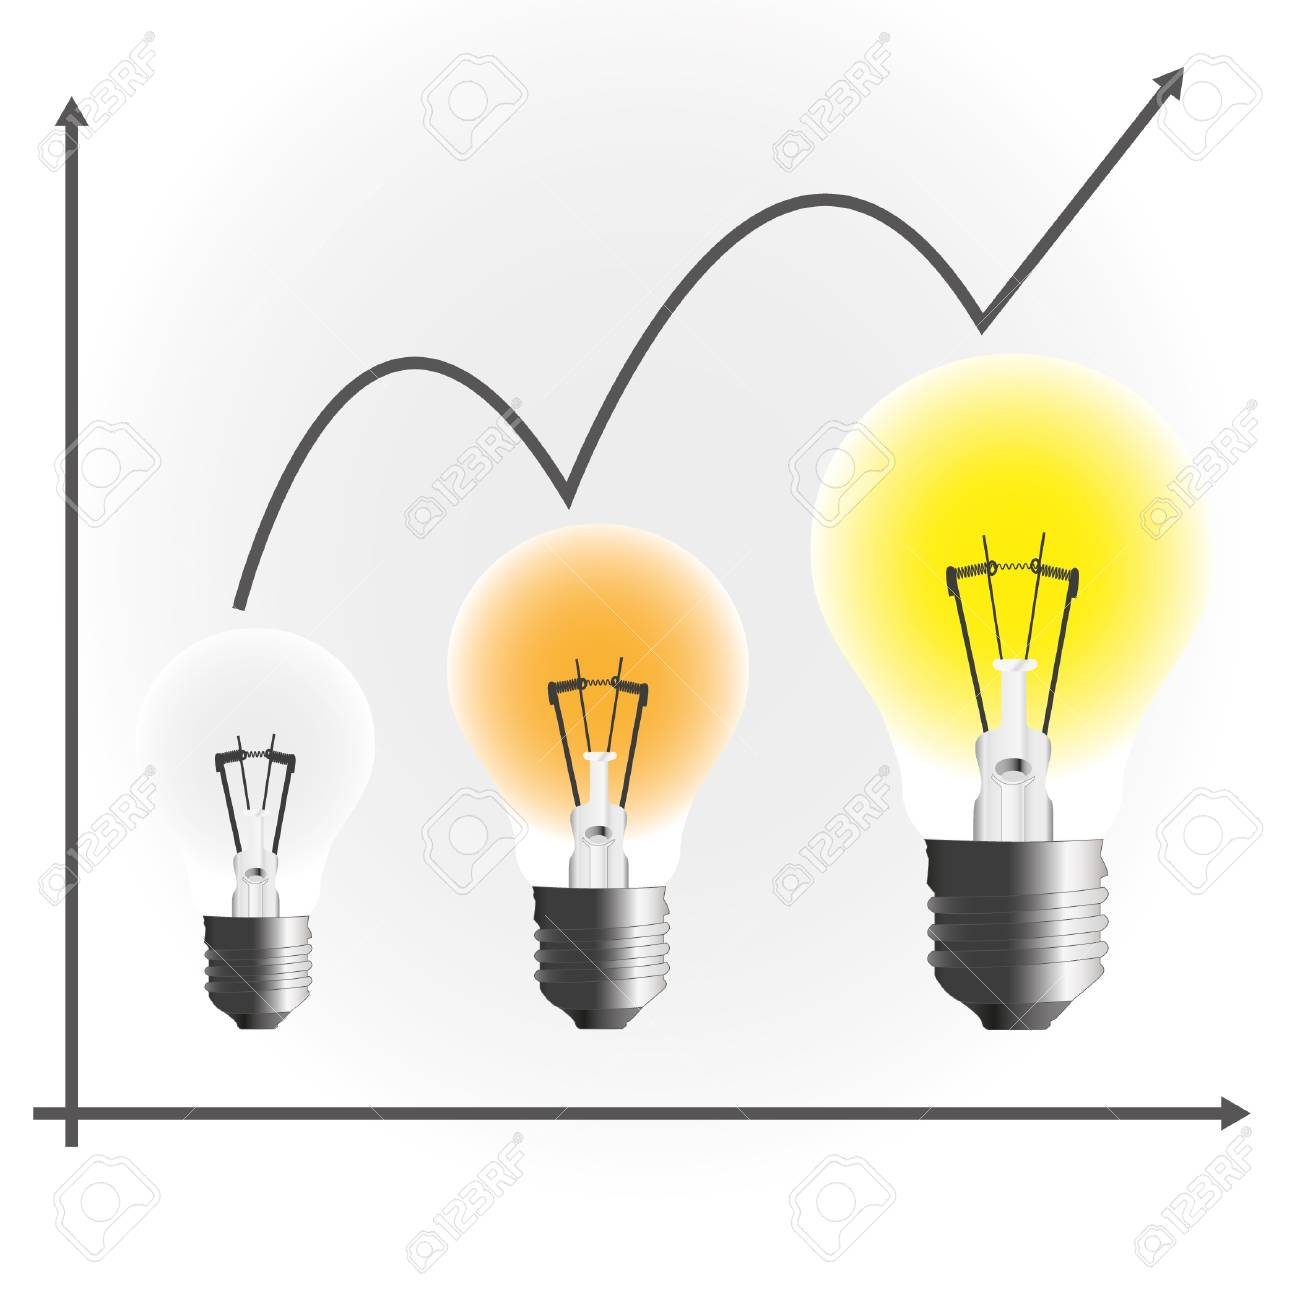 Lamp business chart to success. Stock Vector - 11804399